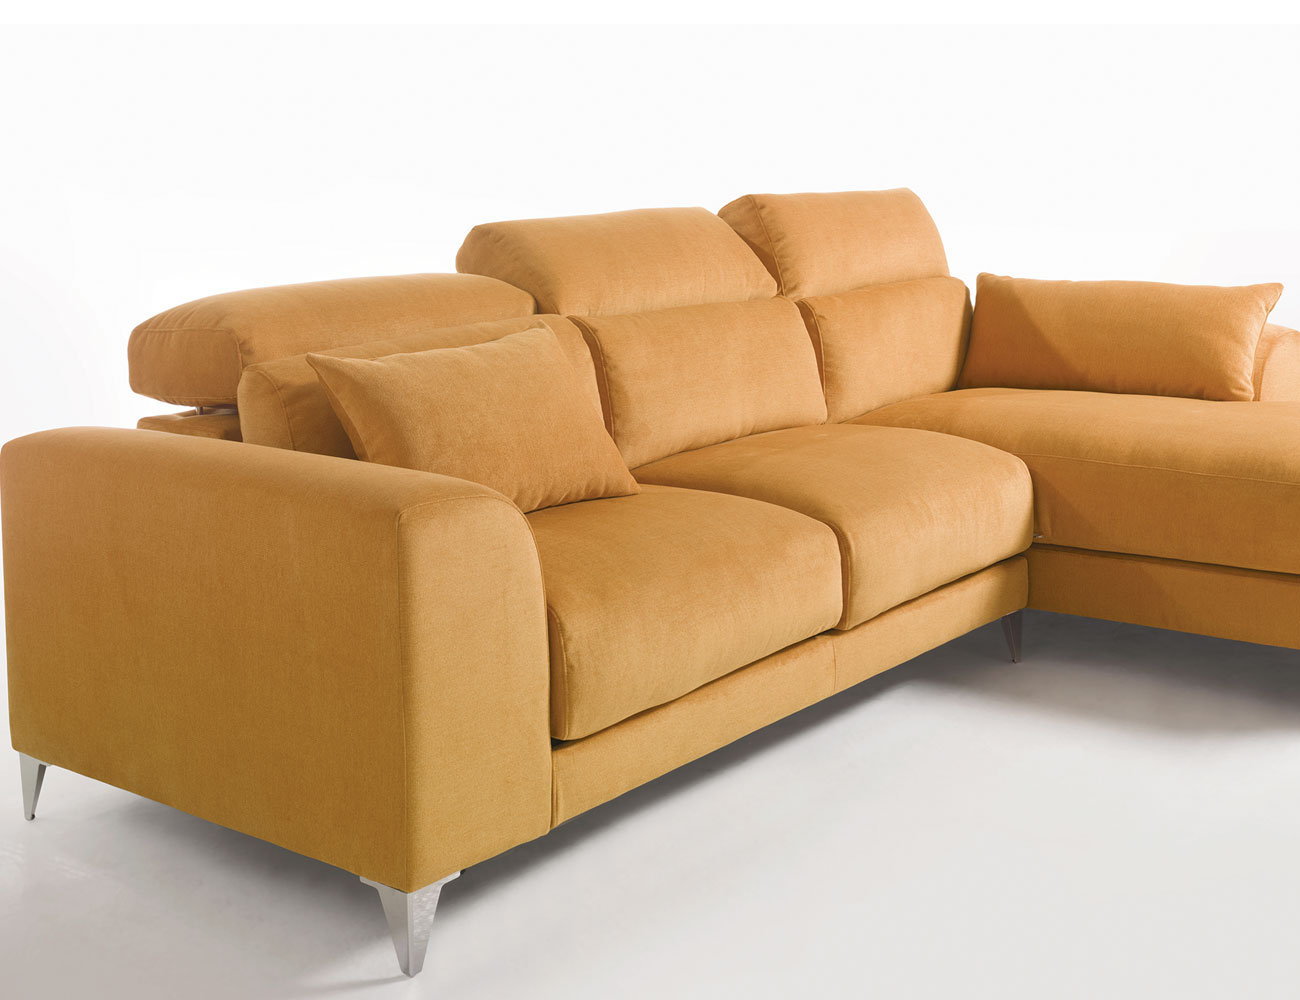 Sofa chaiselongue gran lujo decorativo patas altas amarillo 223